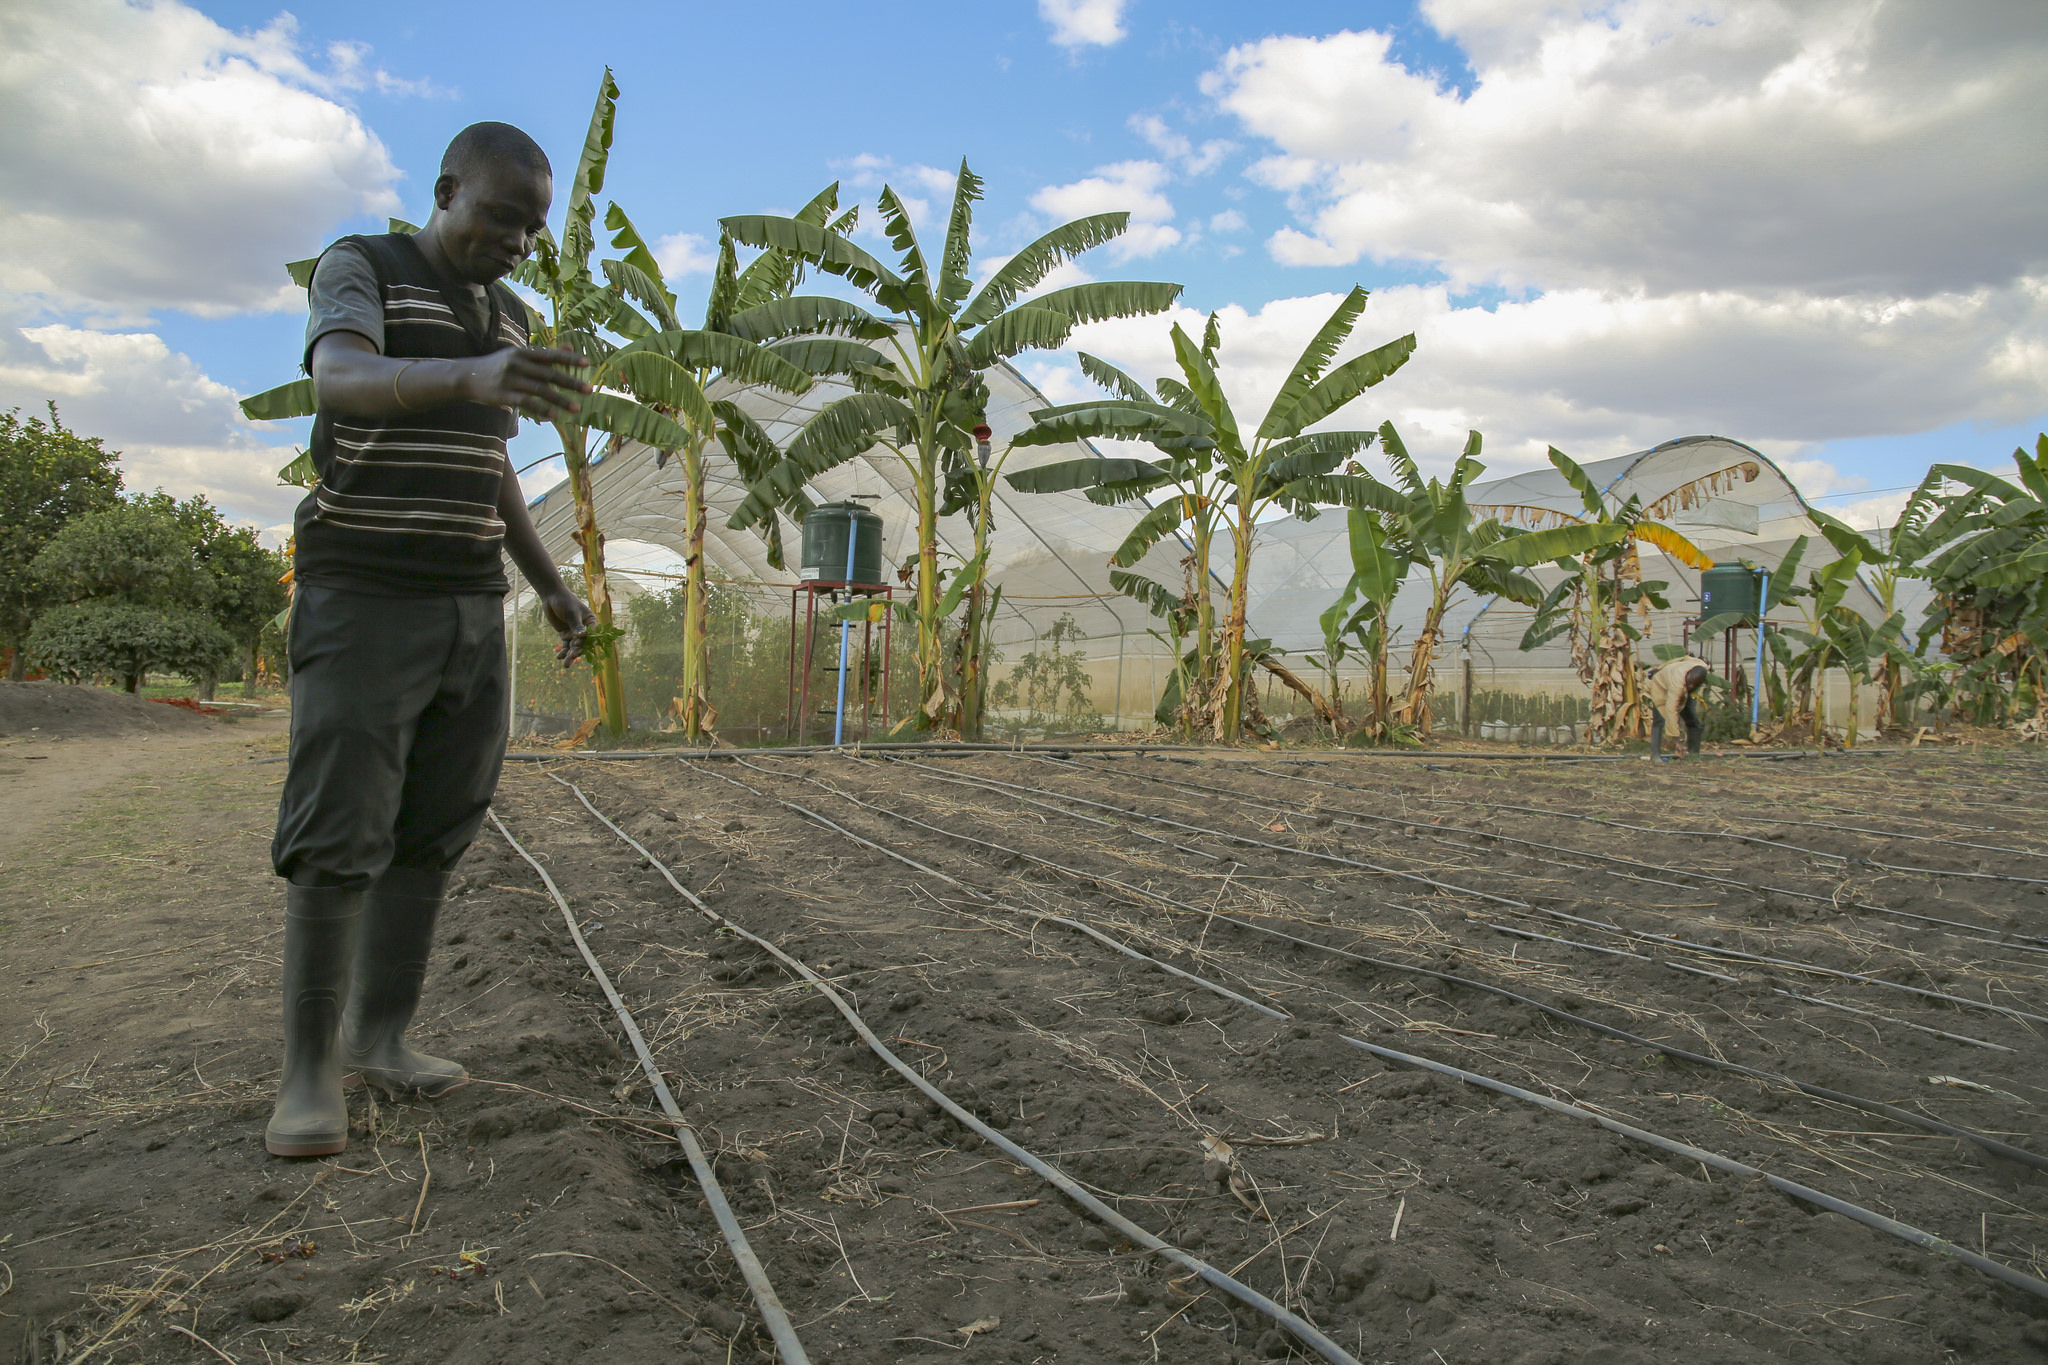 <p>Drip irrigation project in Malawi. Flickr/IFPRI</p>